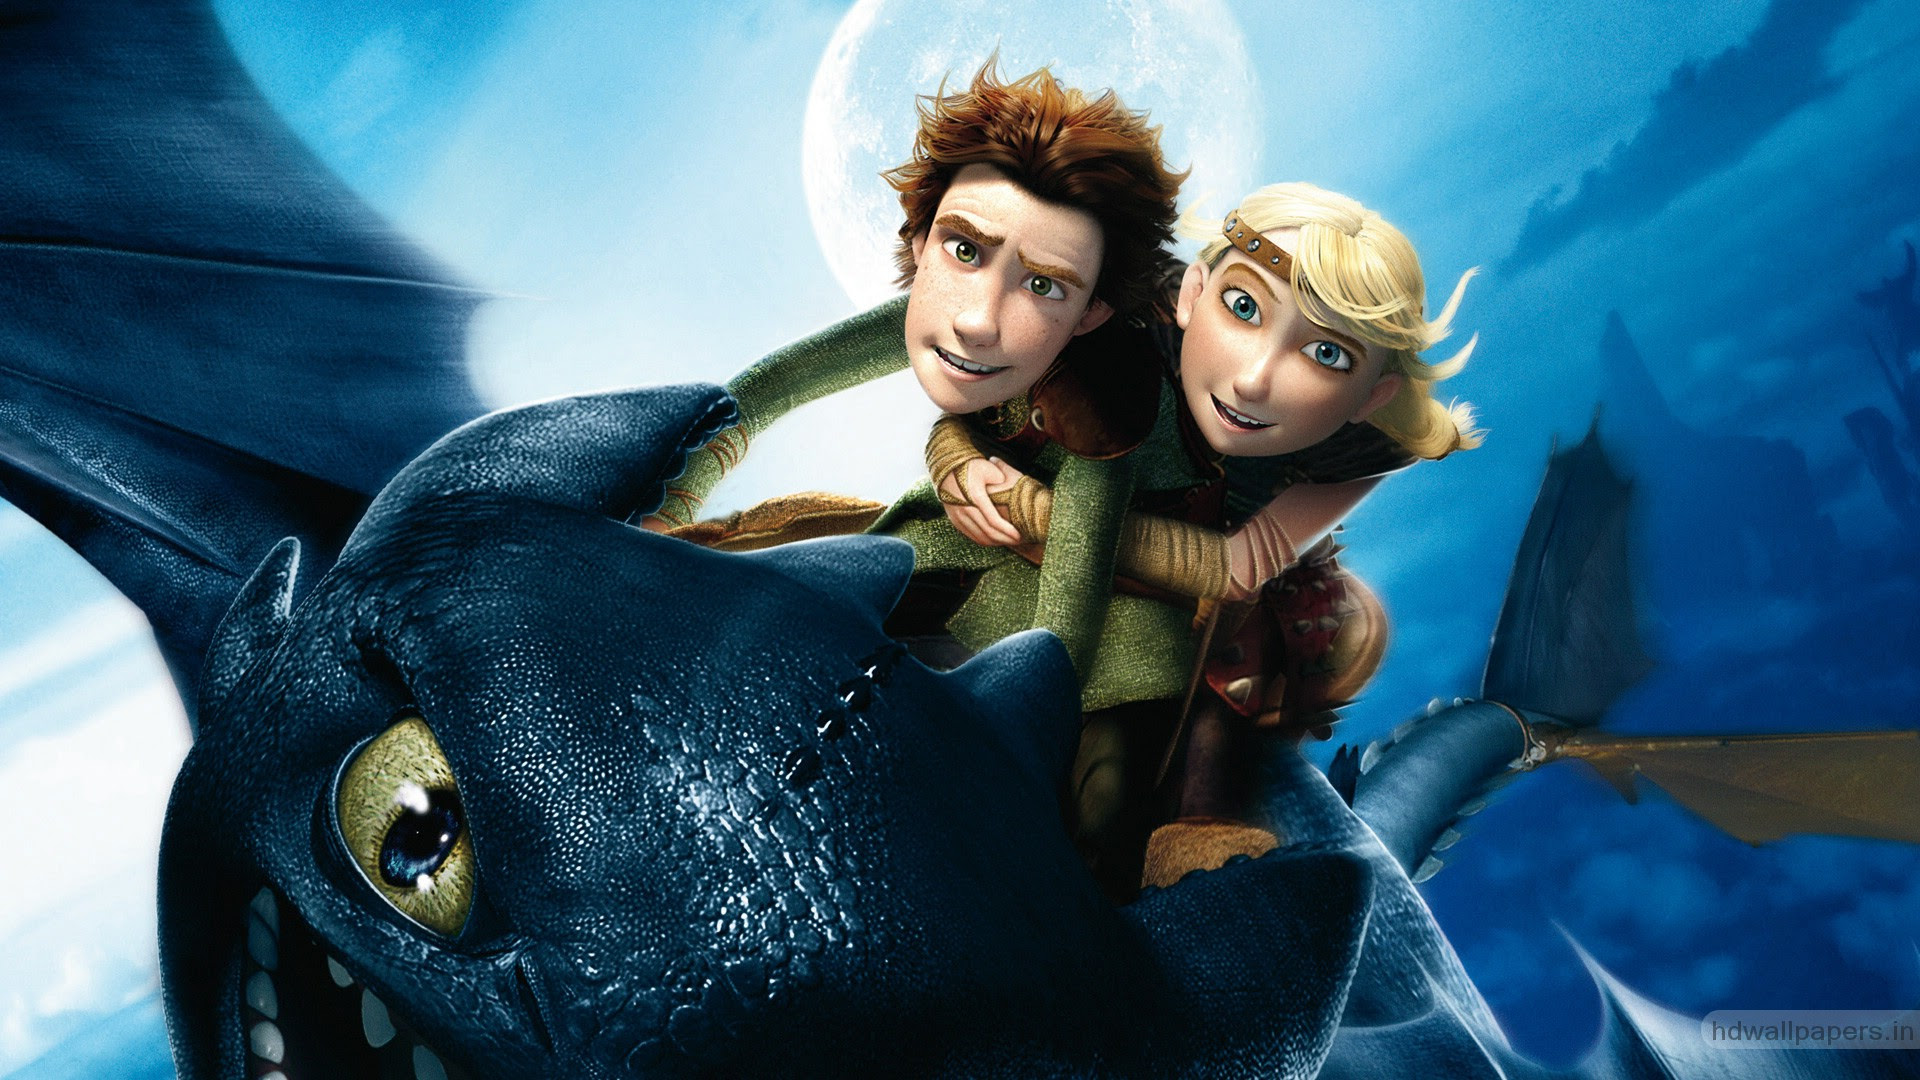 How To Train Your Dragon Hd Wallpapers For Desktop Download